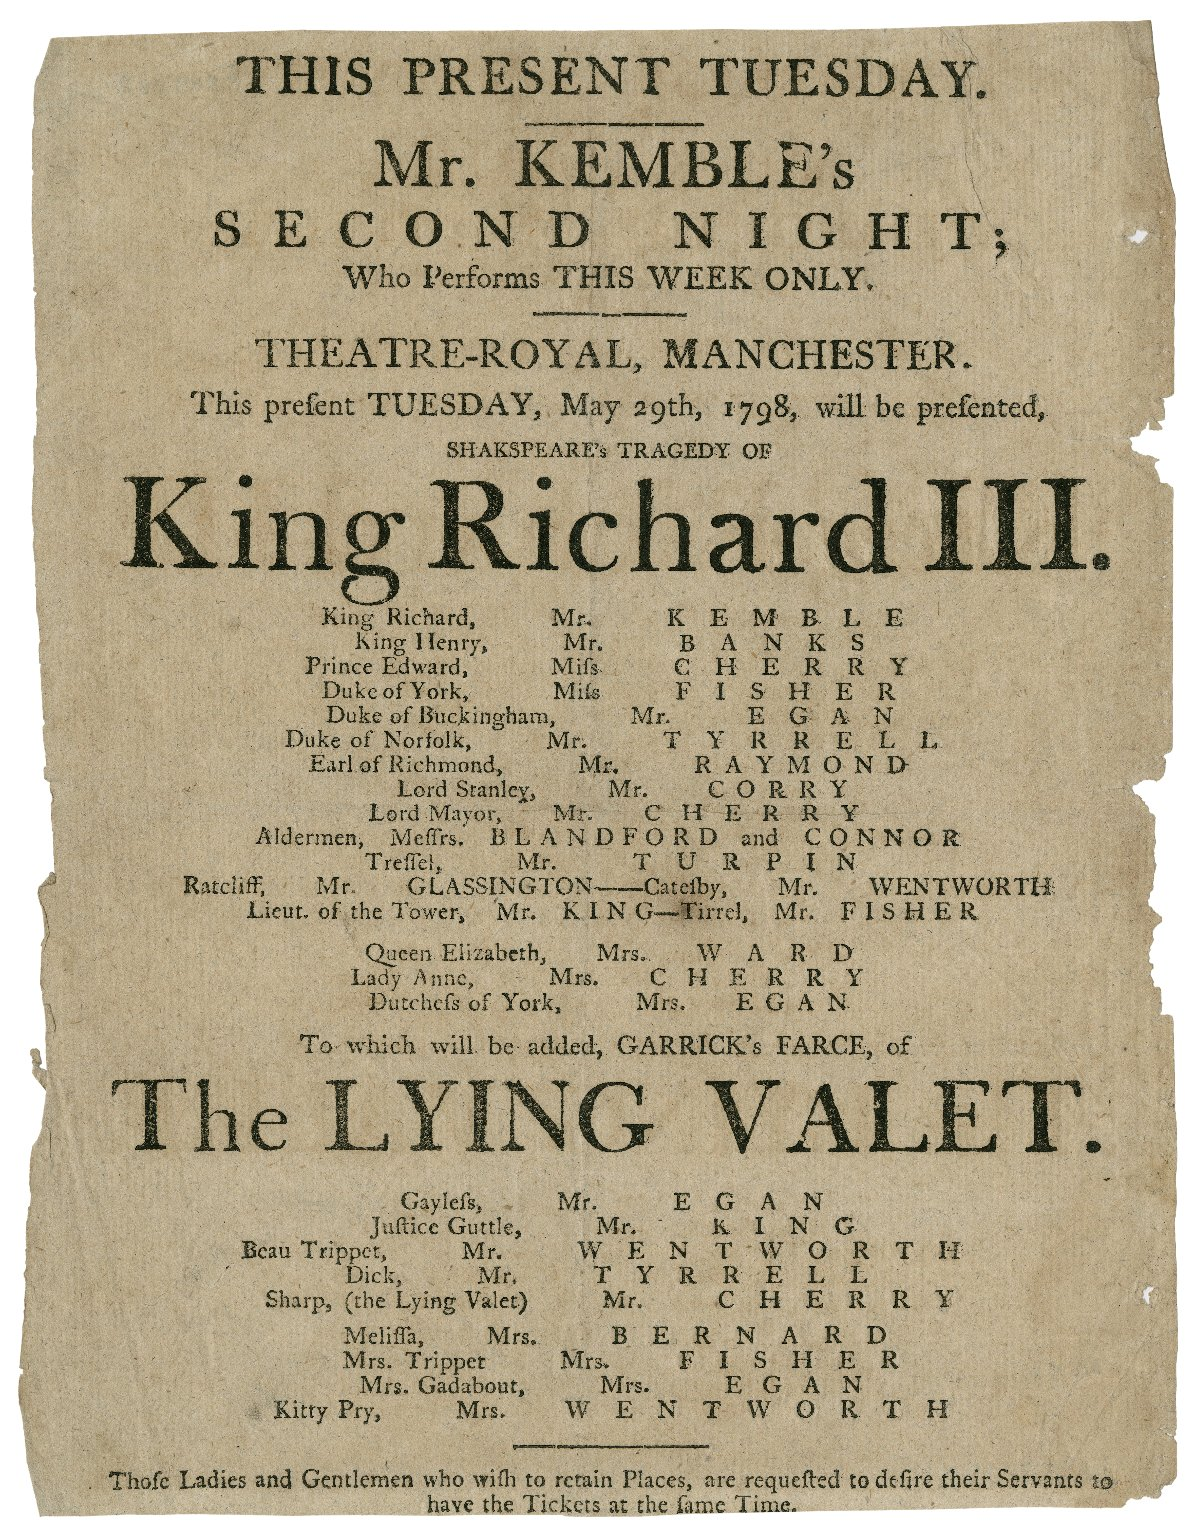 Playbill for King Richard III and The Lying Valet